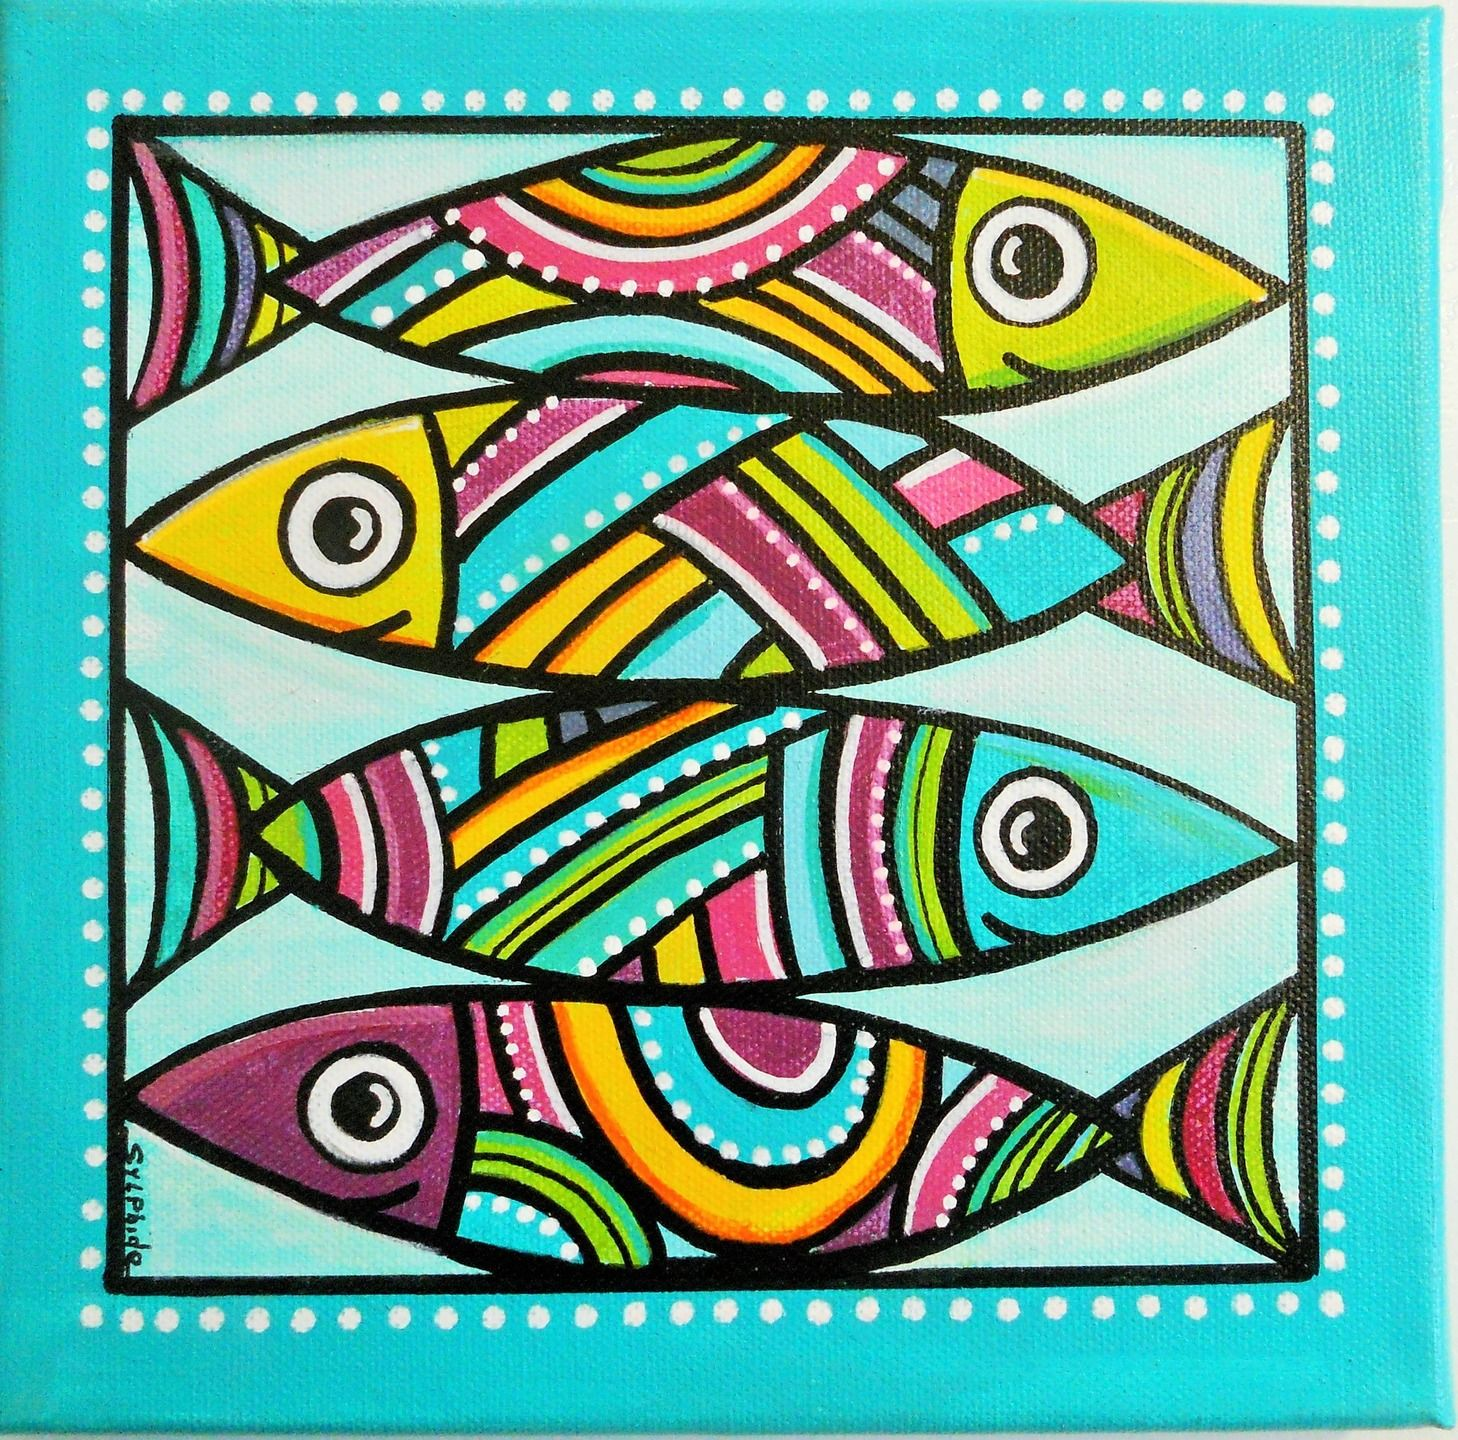 les sardines un tableau de poissons color s d corations murales par sylphide poisson. Black Bedroom Furniture Sets. Home Design Ideas